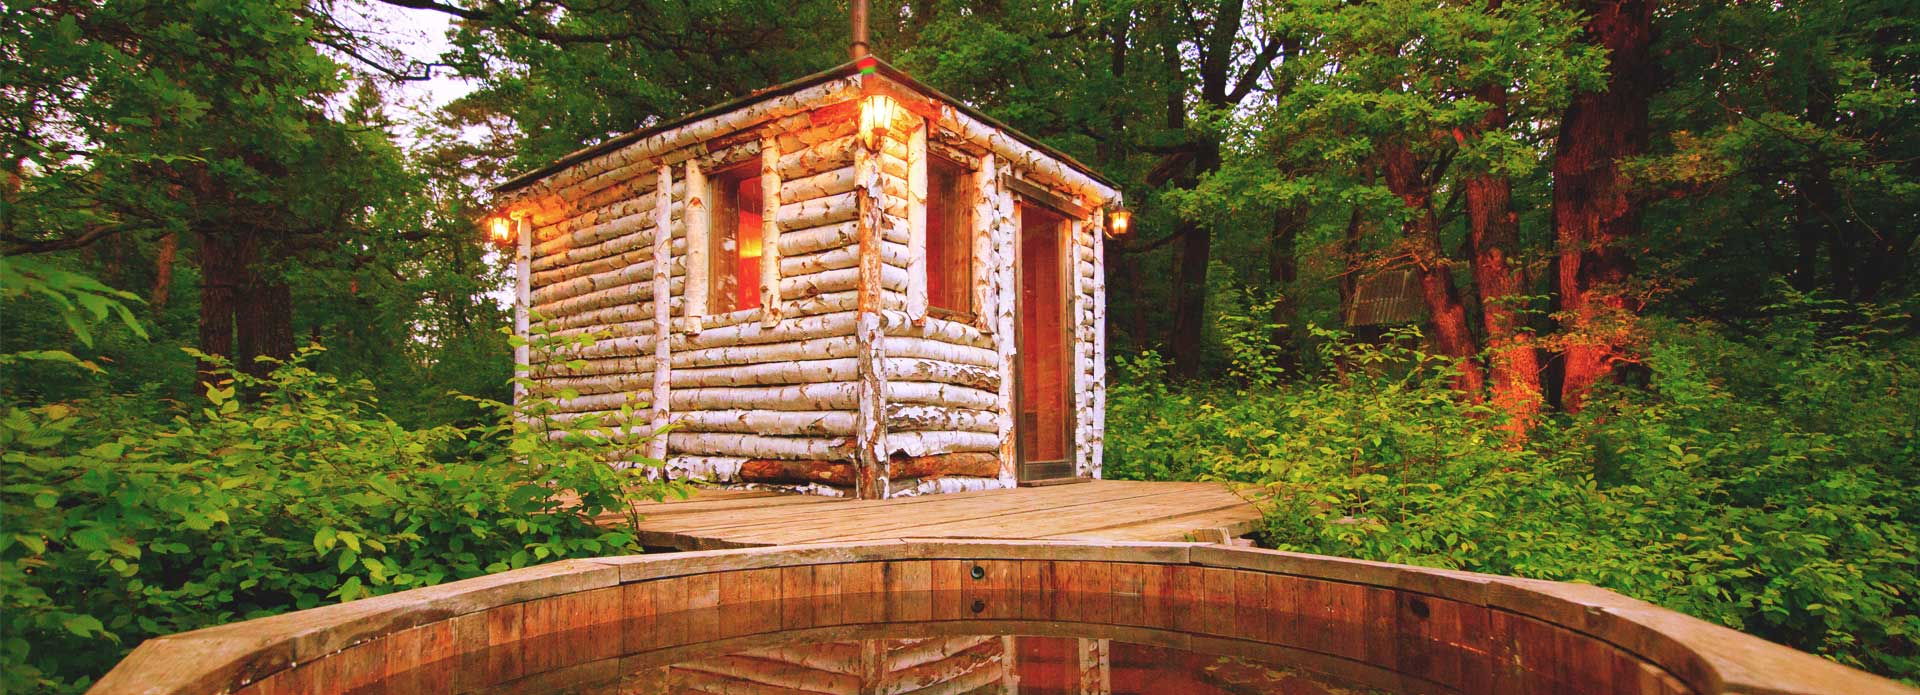 Sauna in the woods